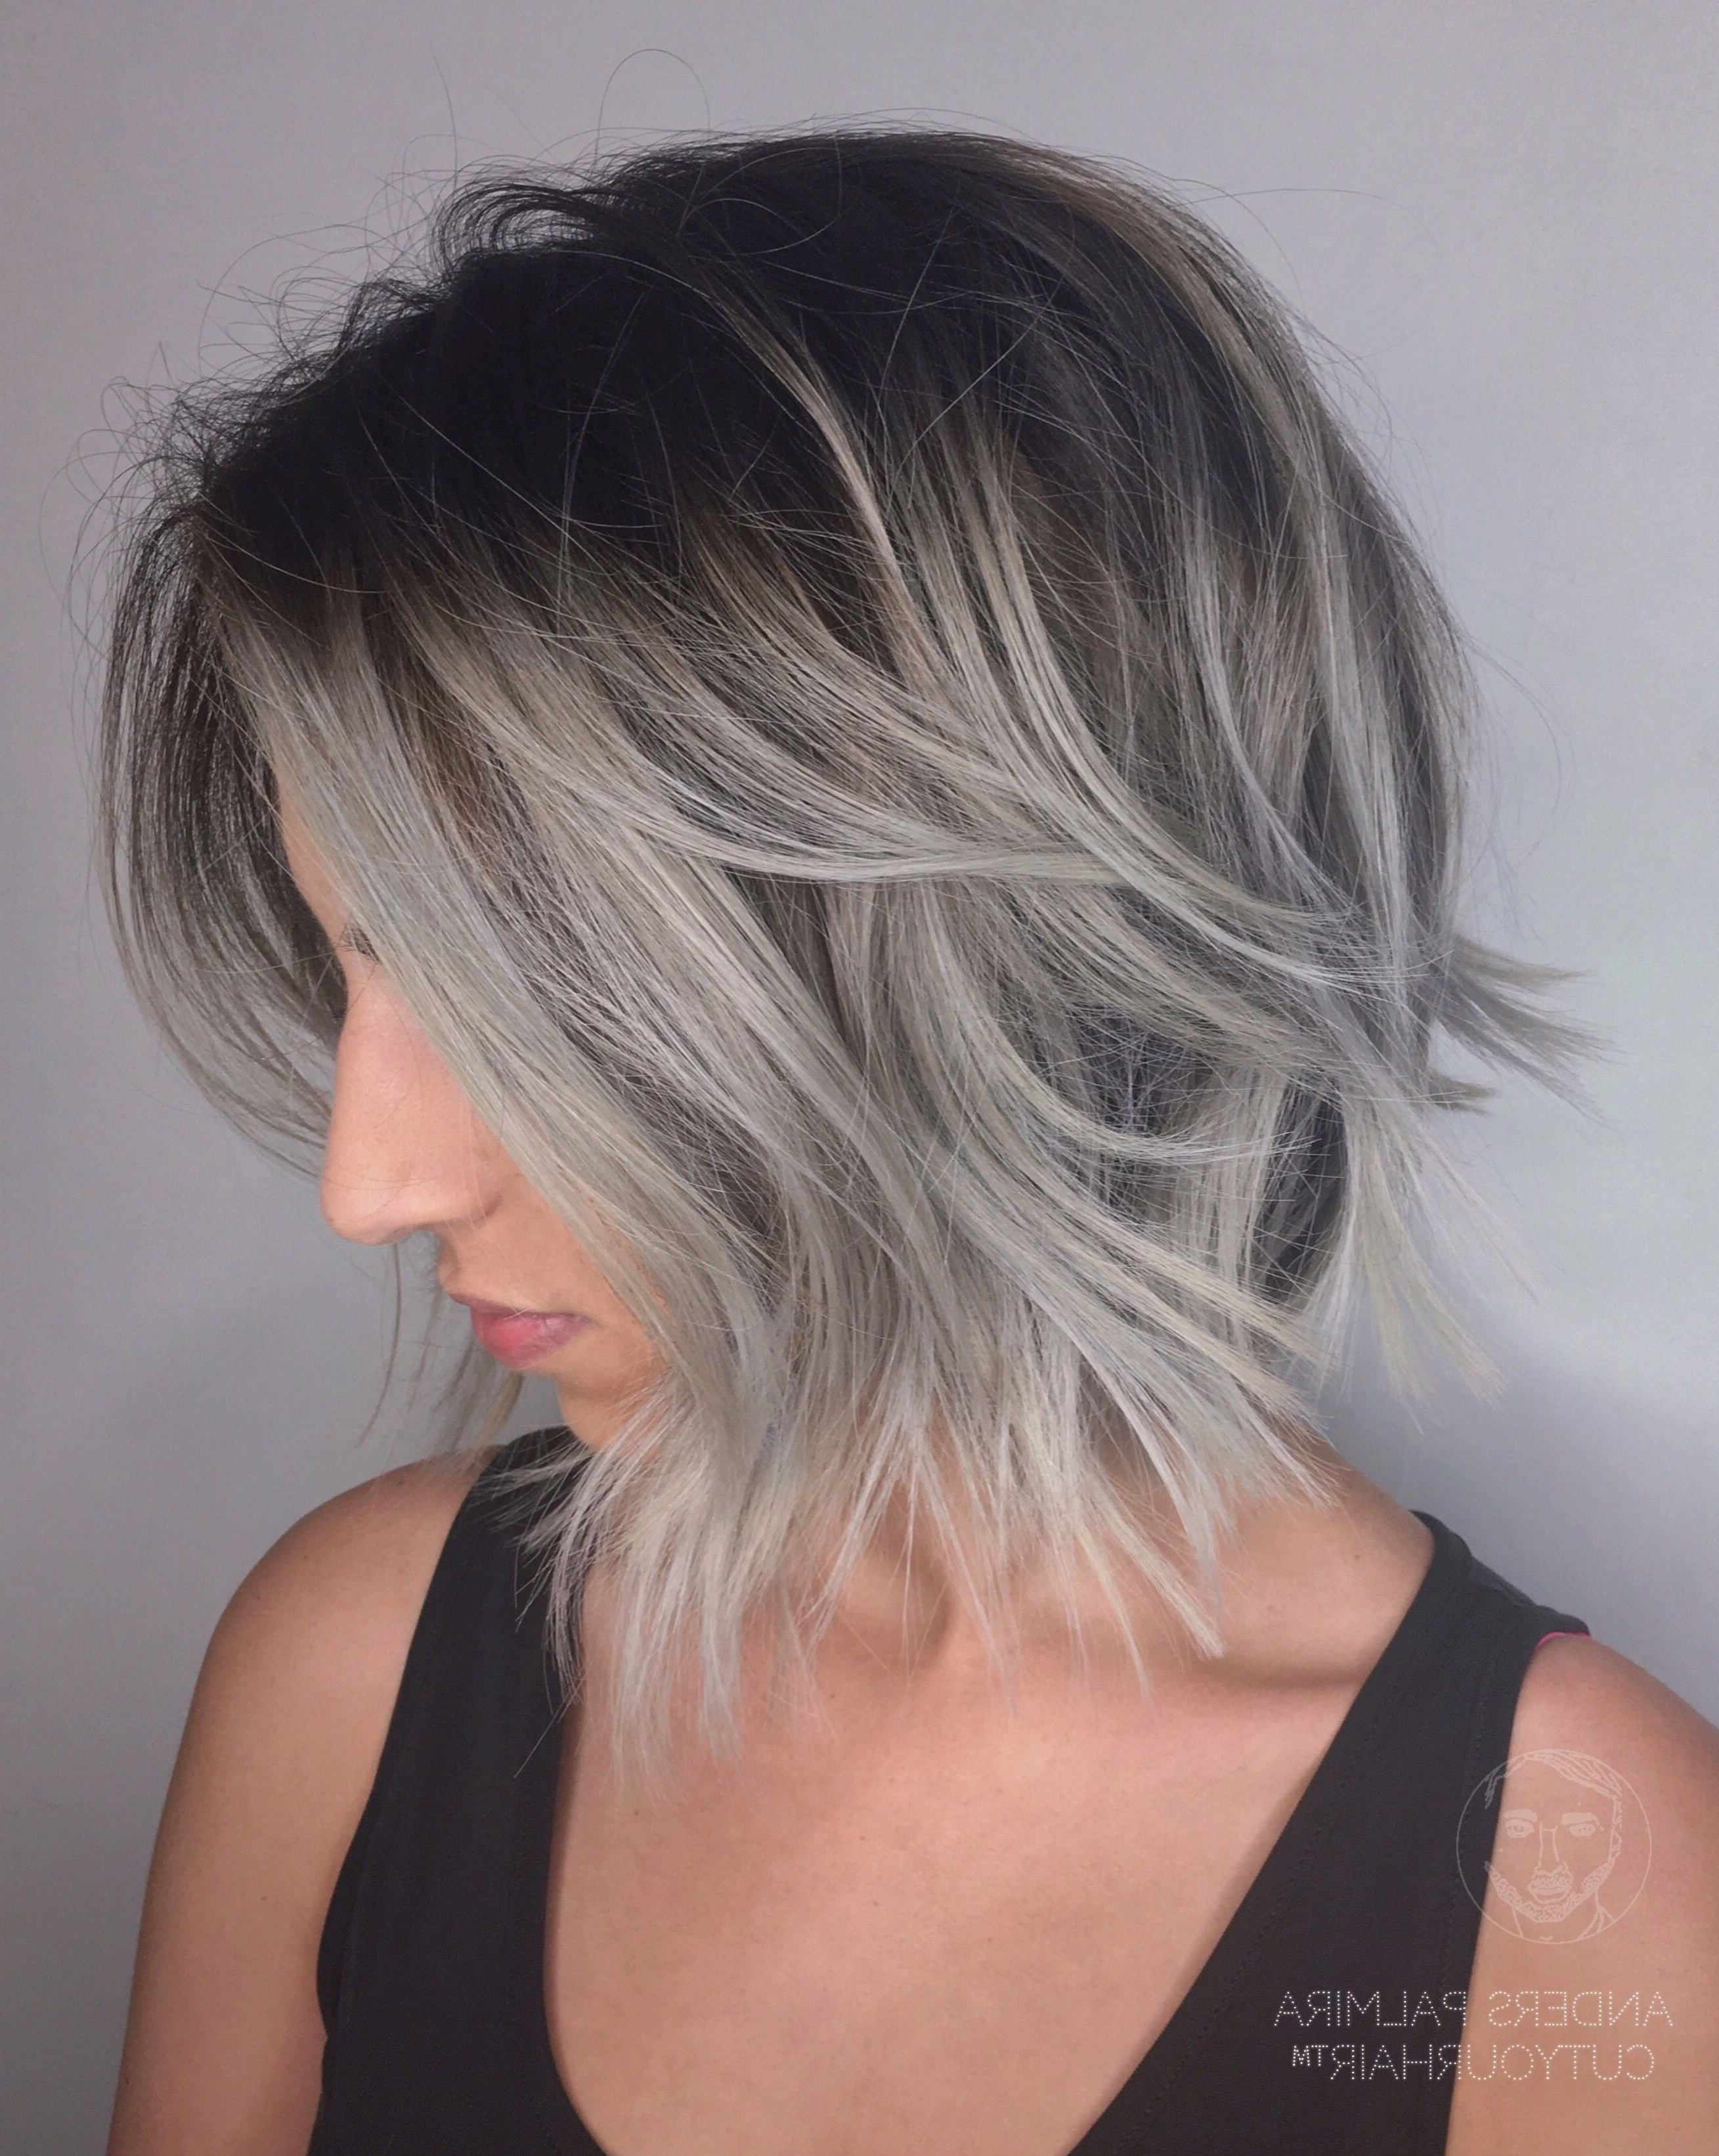 Aveda Wavy Long Blonde Bob Short Hair Beach Wave Medium Ideas Lob Pertaining To Most Recent Pastel And Ash Pixie Haircuts With Fused Layers (View 7 of 15)